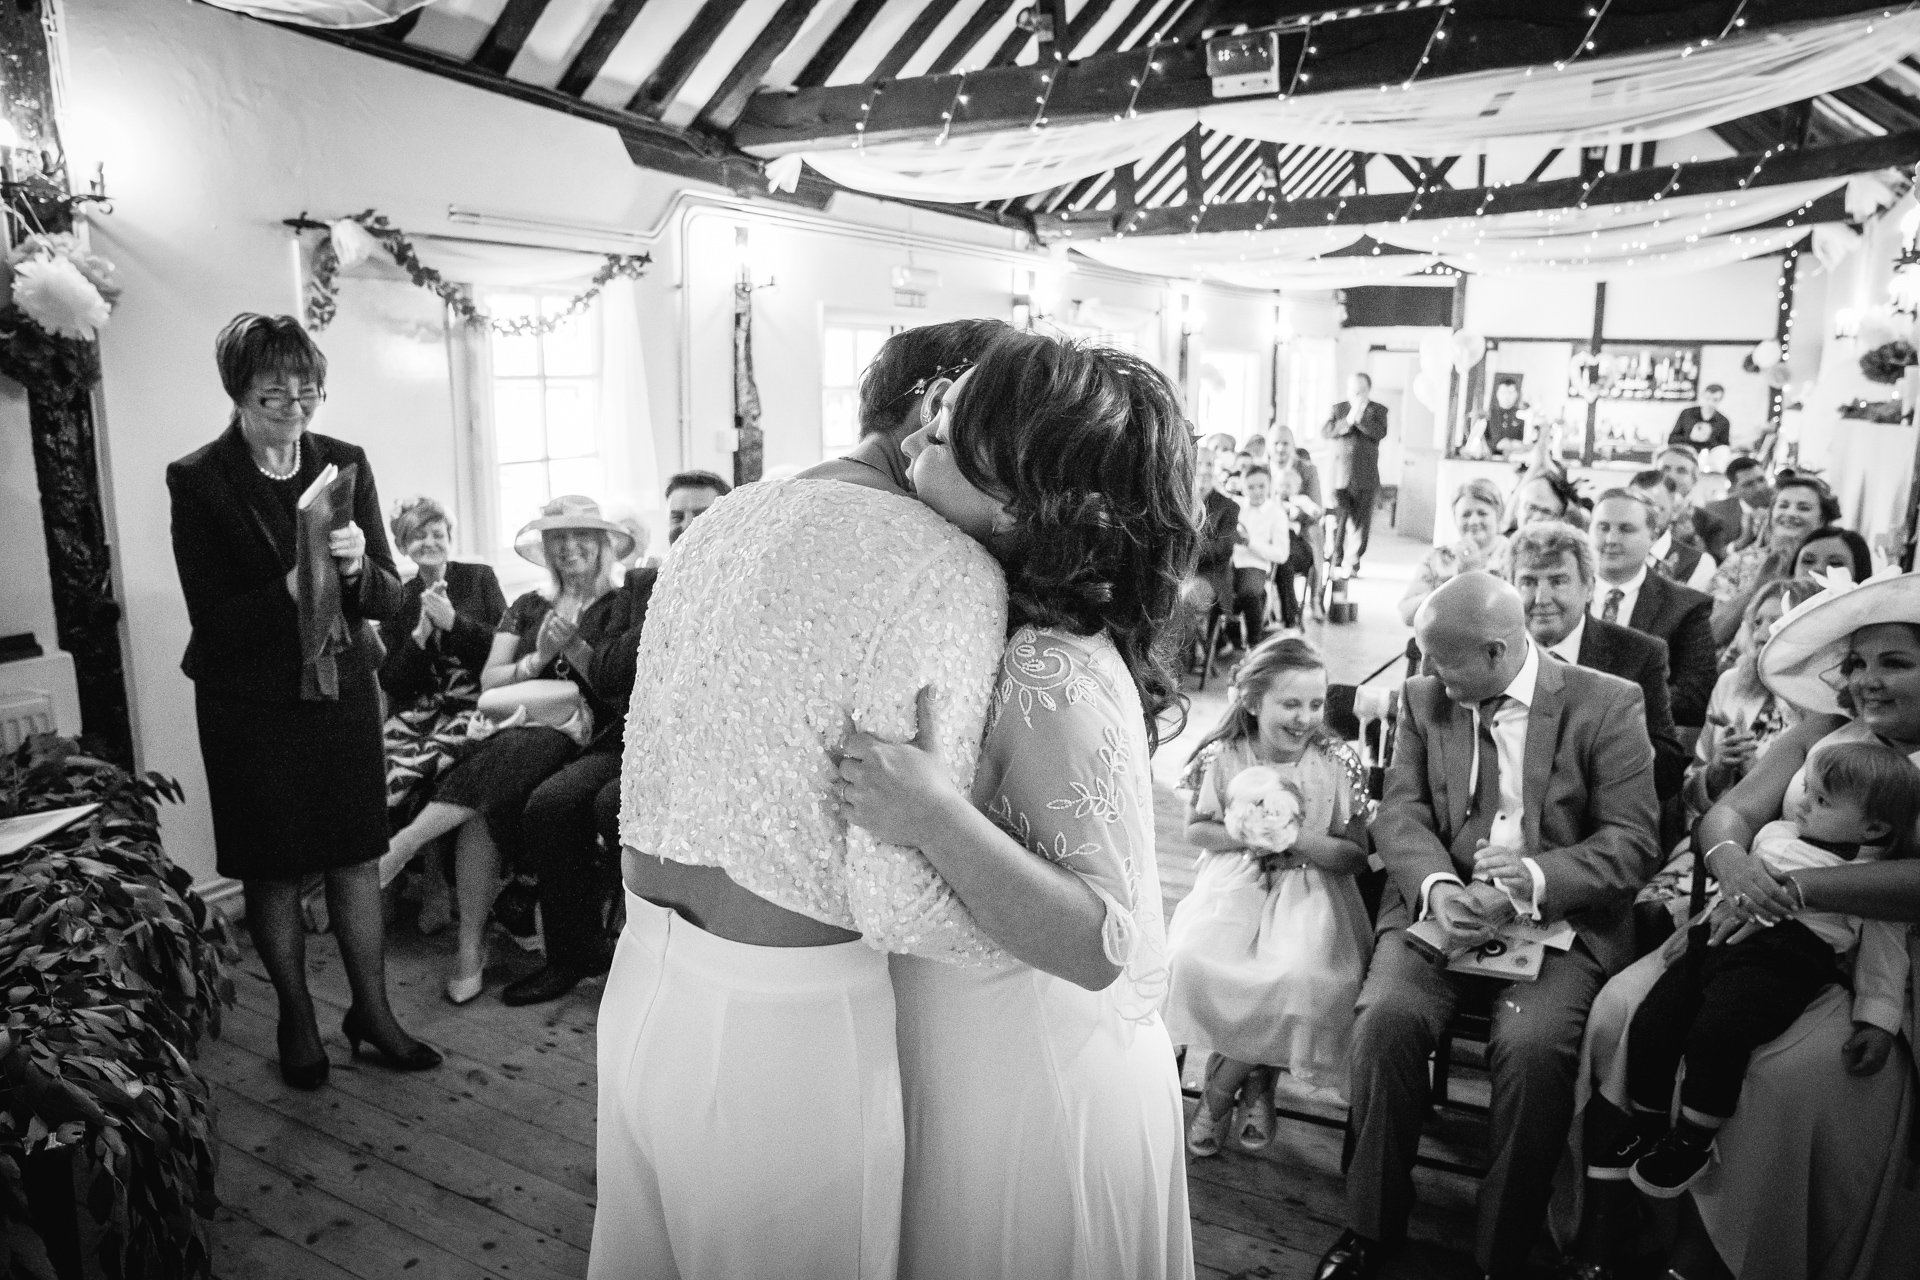 First hug during the ceremony of two brides at The Bull Hotel, Kent